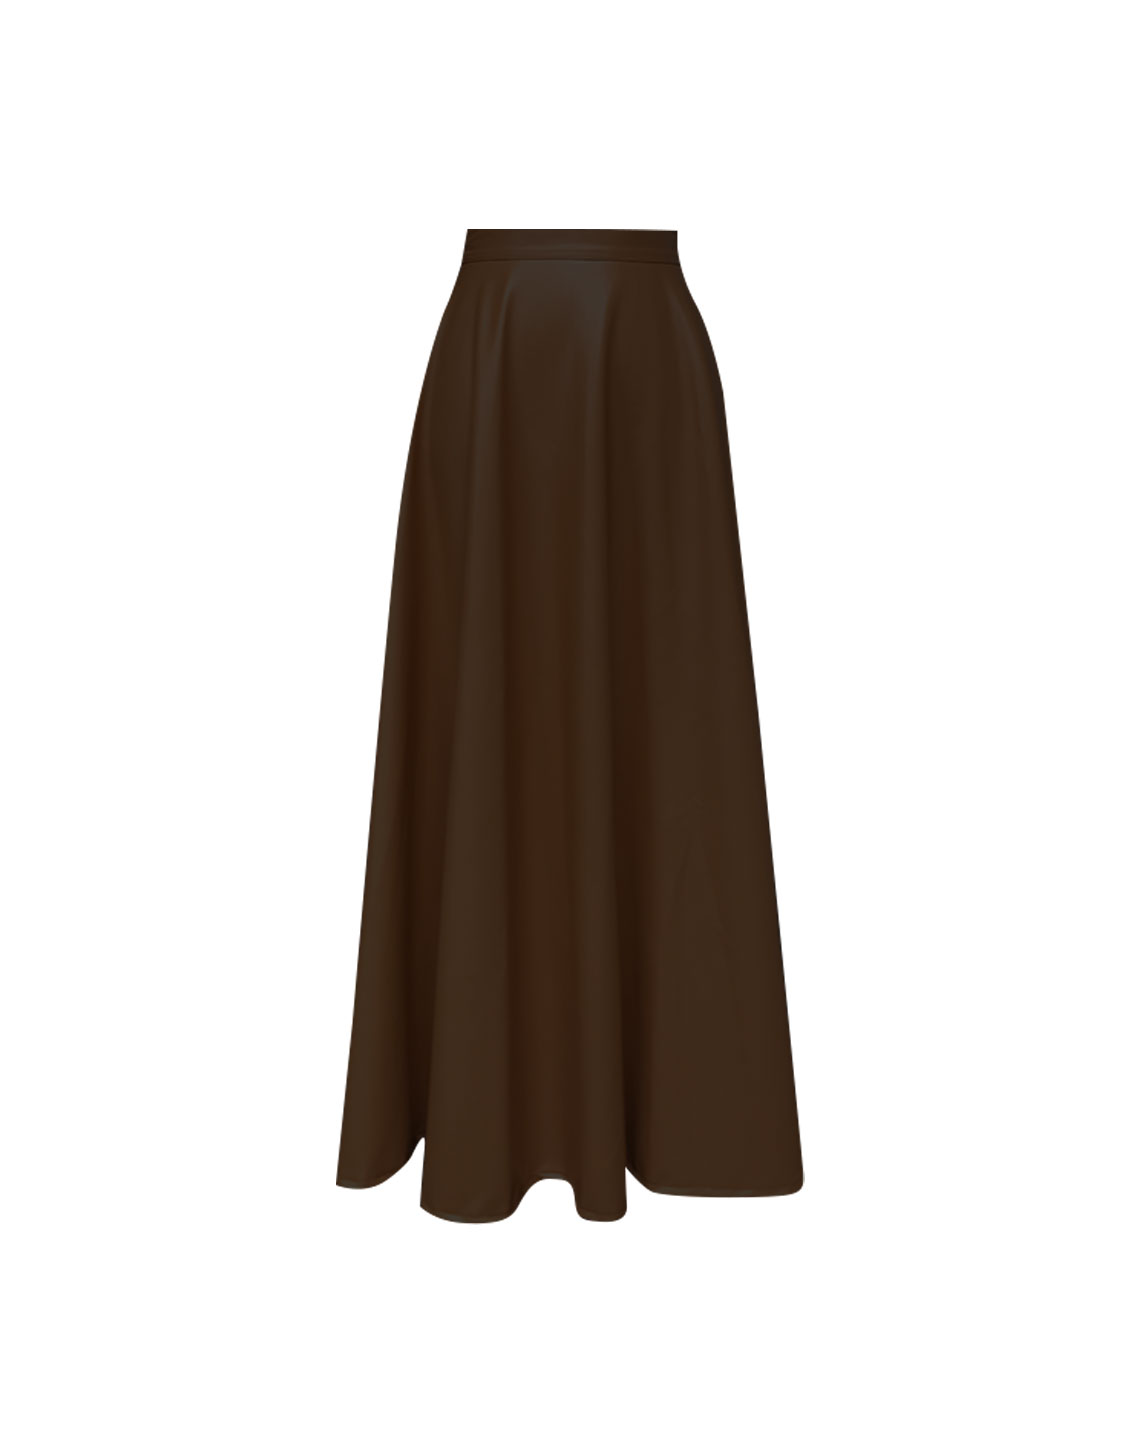 New Hibiscus Skirt - Brown Leather by Jessica K on curated-crowd.com